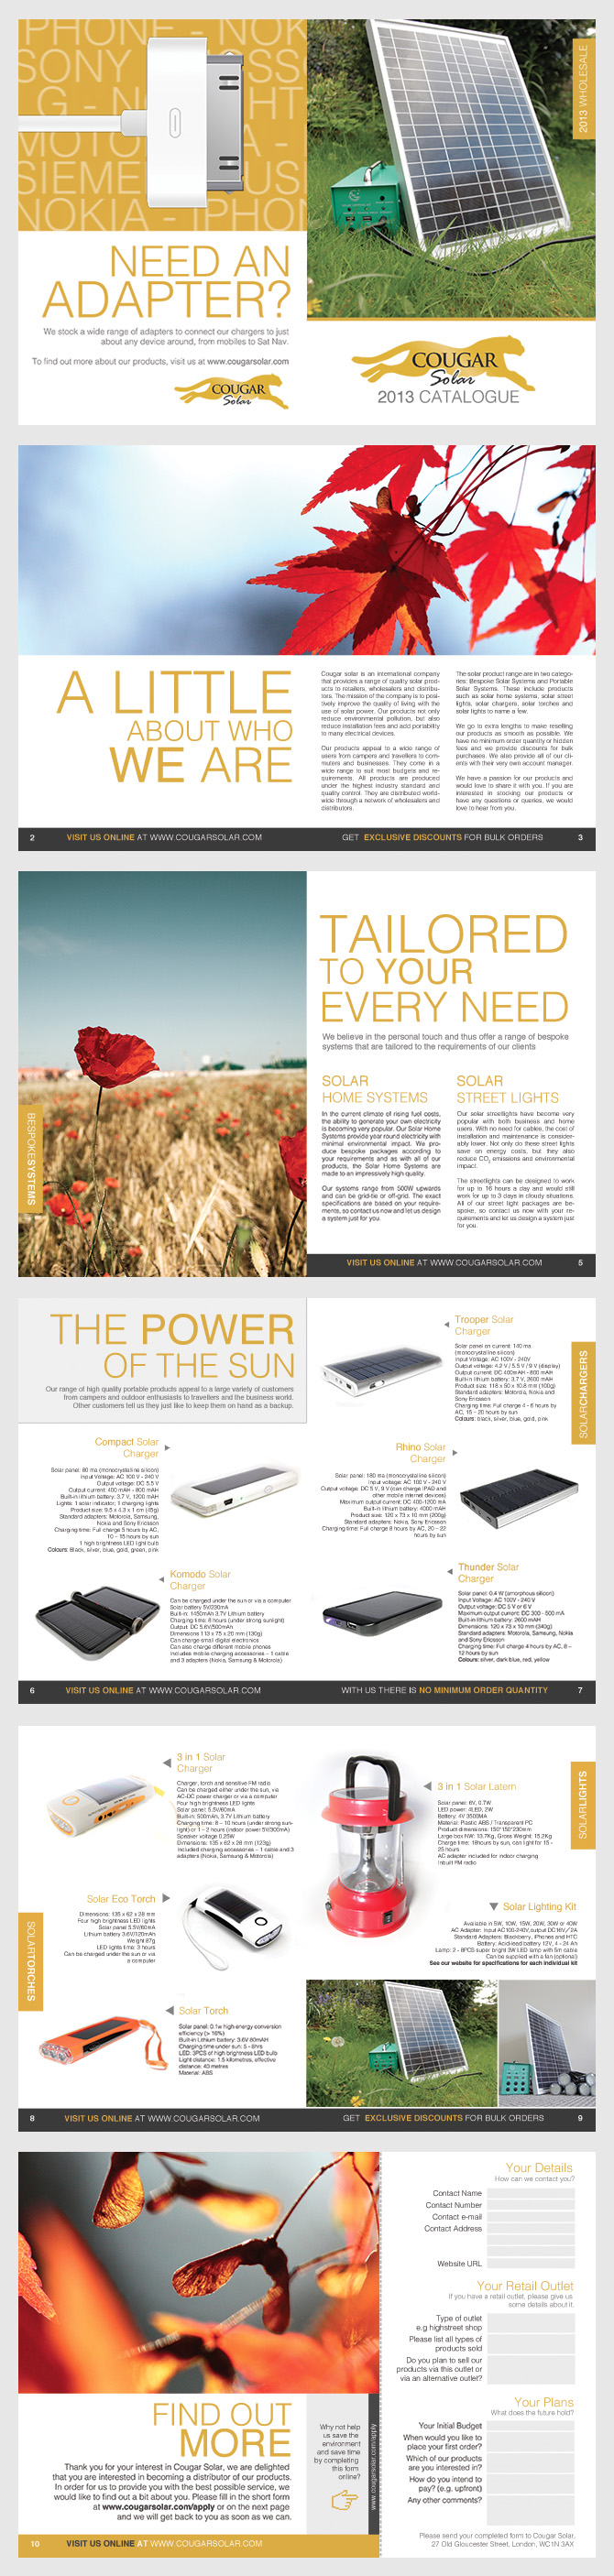 Cougar Solar Brochure Design